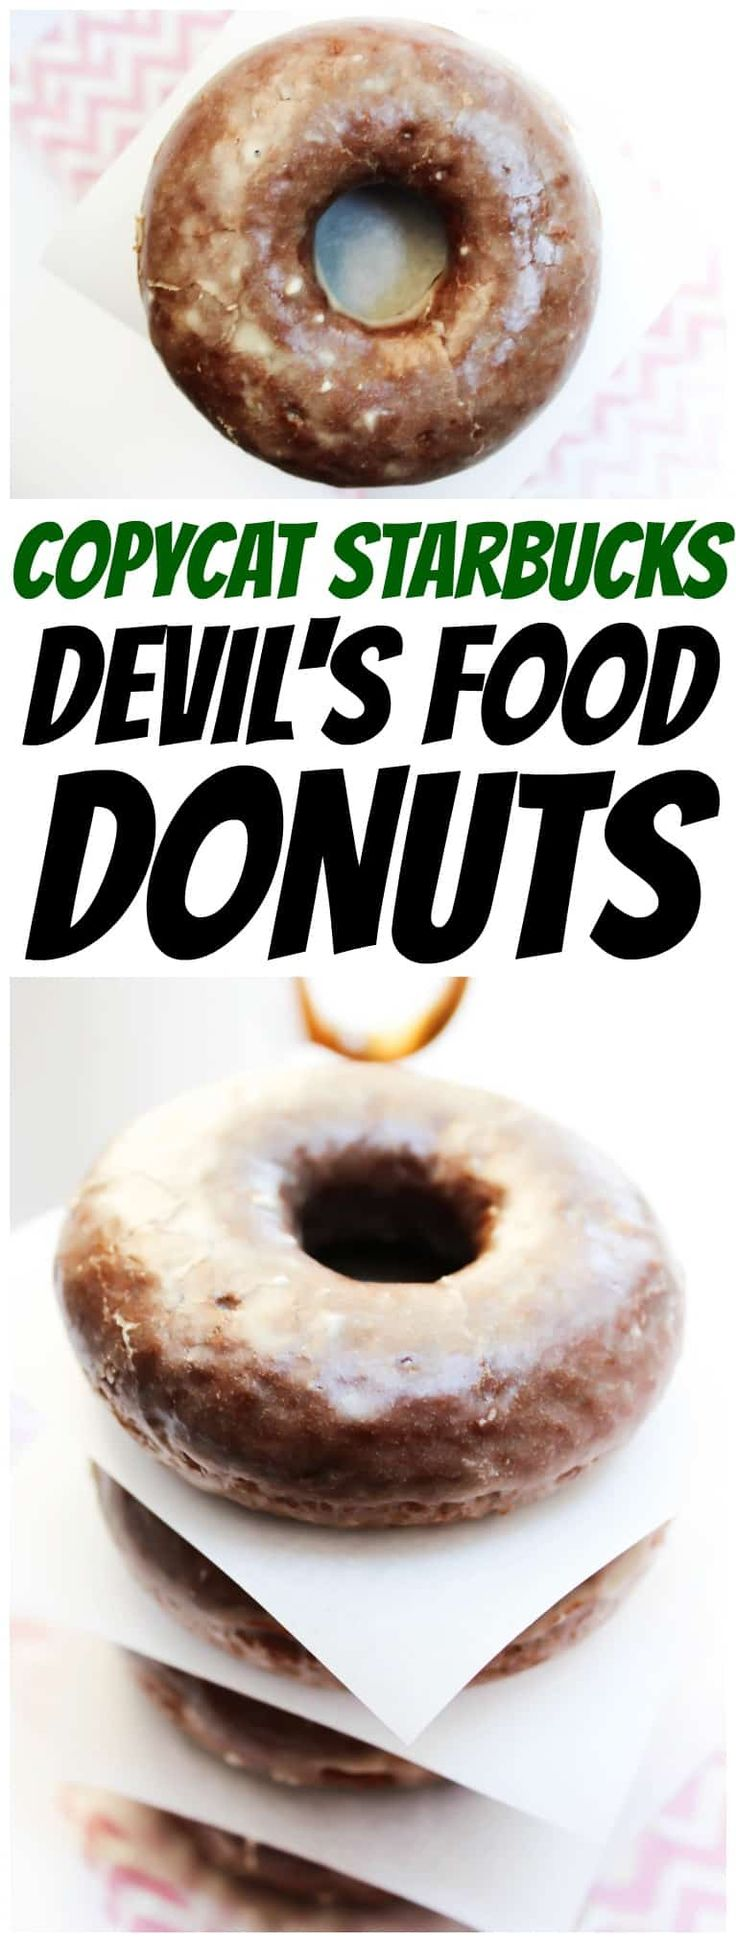 DEVIL'S FOOD DONUTS are insanely delicious. Covered in a vanilla-butter glaze, they're better that the real deal and healthier too! #donut #baked #devilsfoodcake #cake #vanilla #breakfast